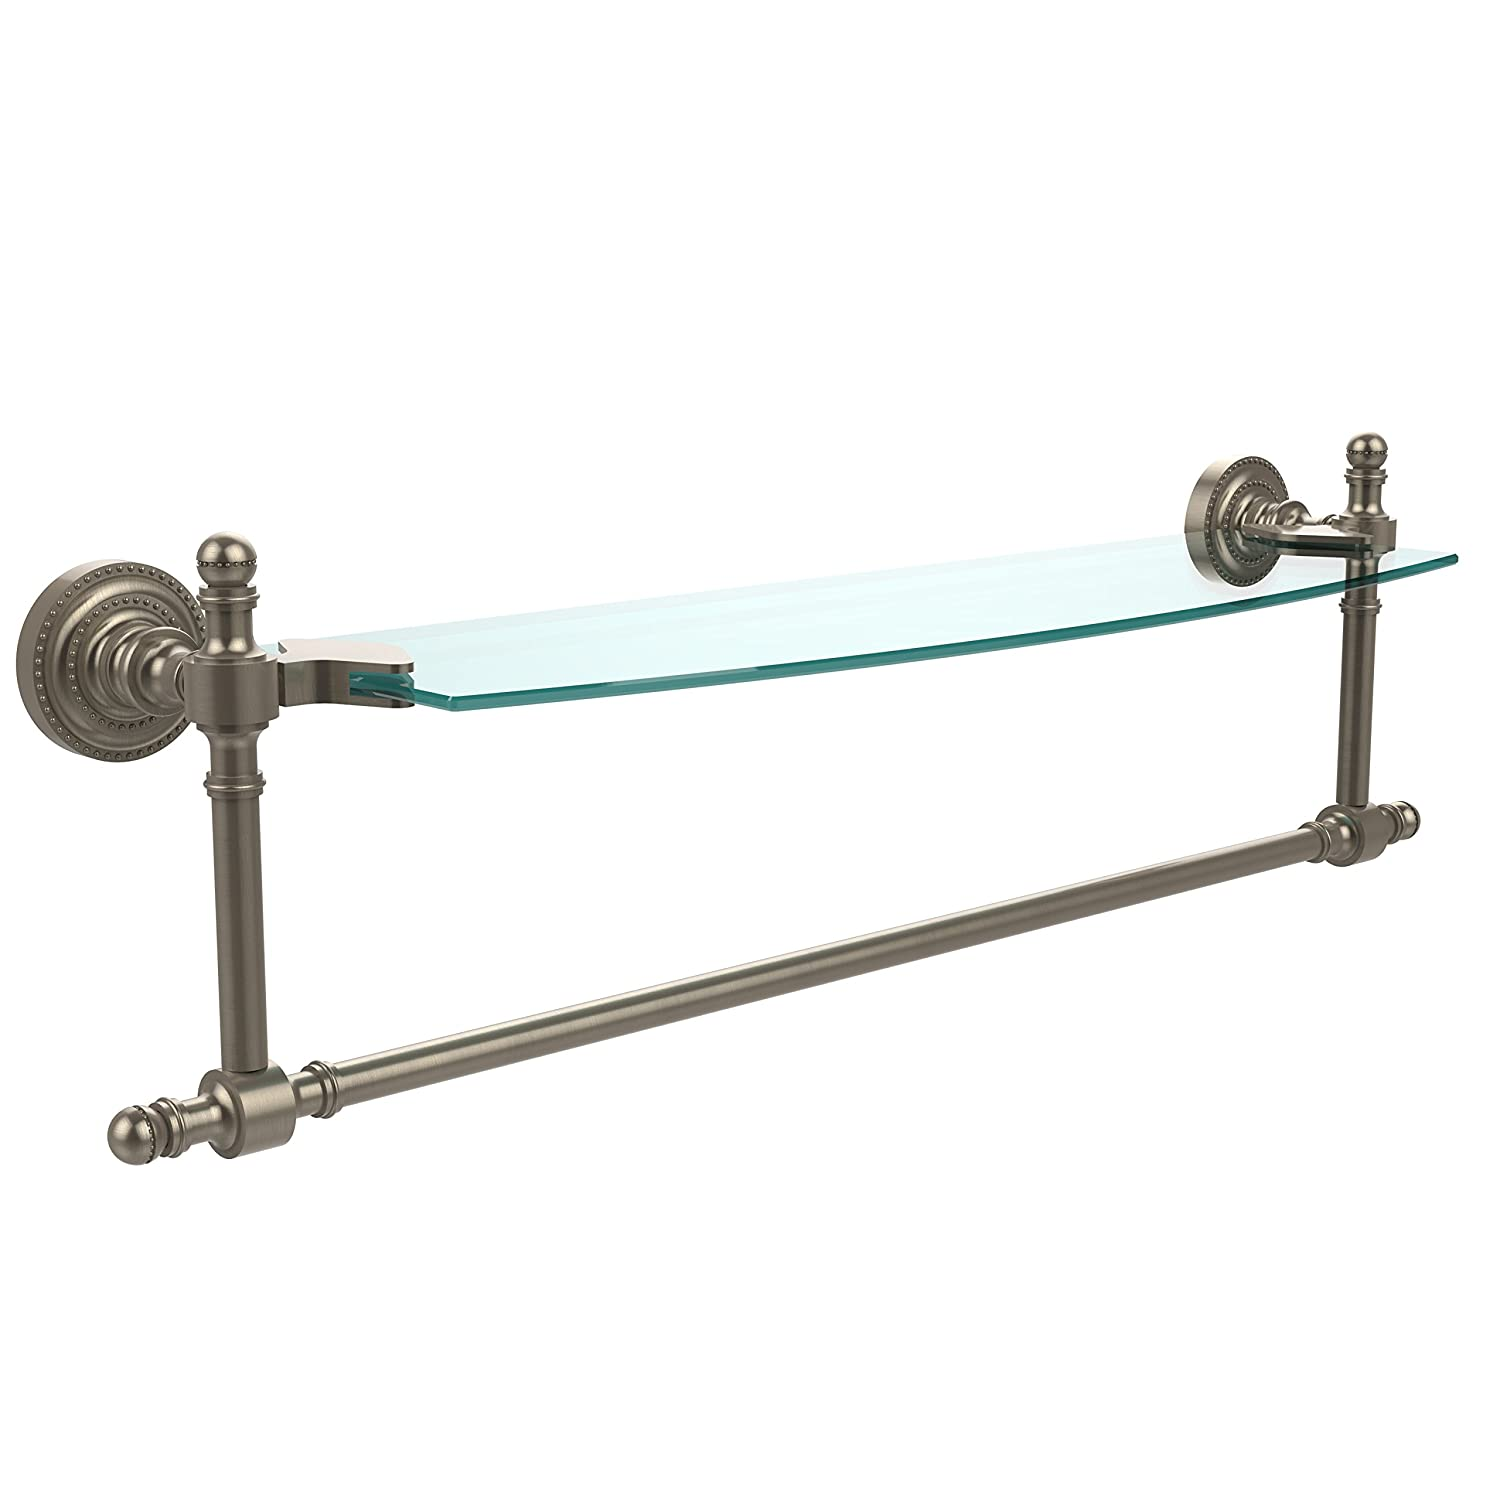 Allied Brass RD-33TB/18-PEW Retro-Dot 46cm X 13cm SINGLE GLASS SHELF WITH TOWEL BAR B004CNOJ7Q